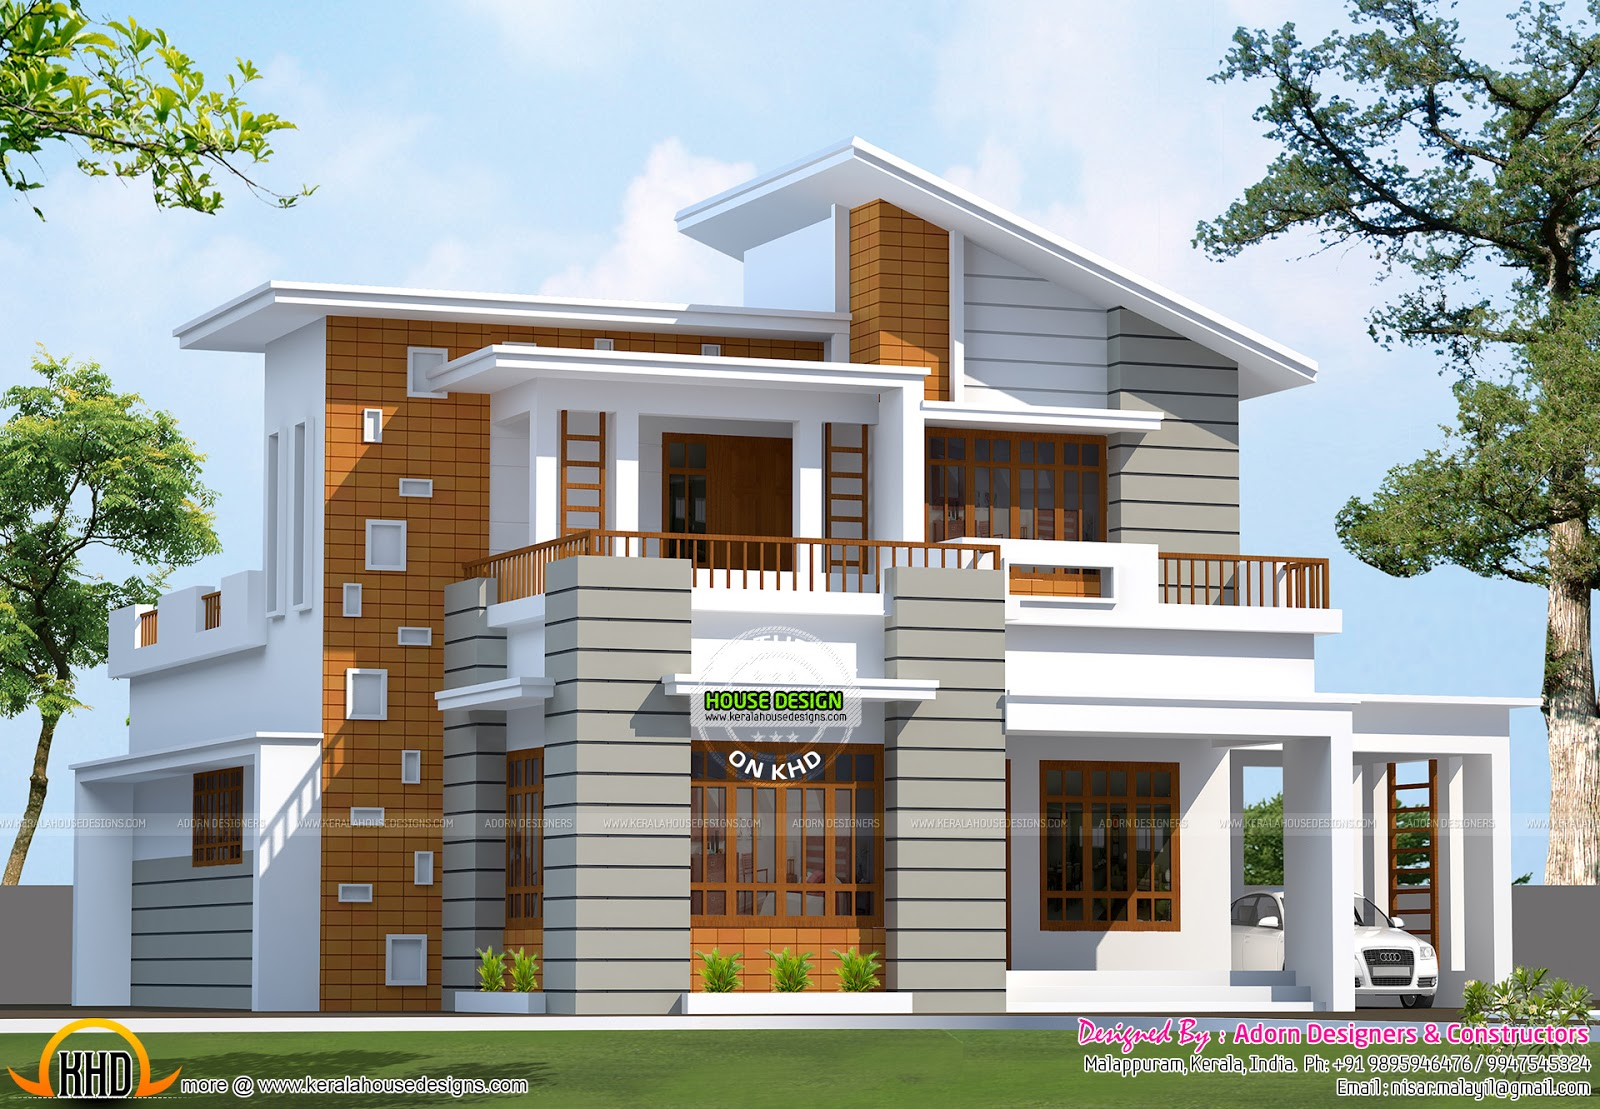 Indian house outlook design for Home design